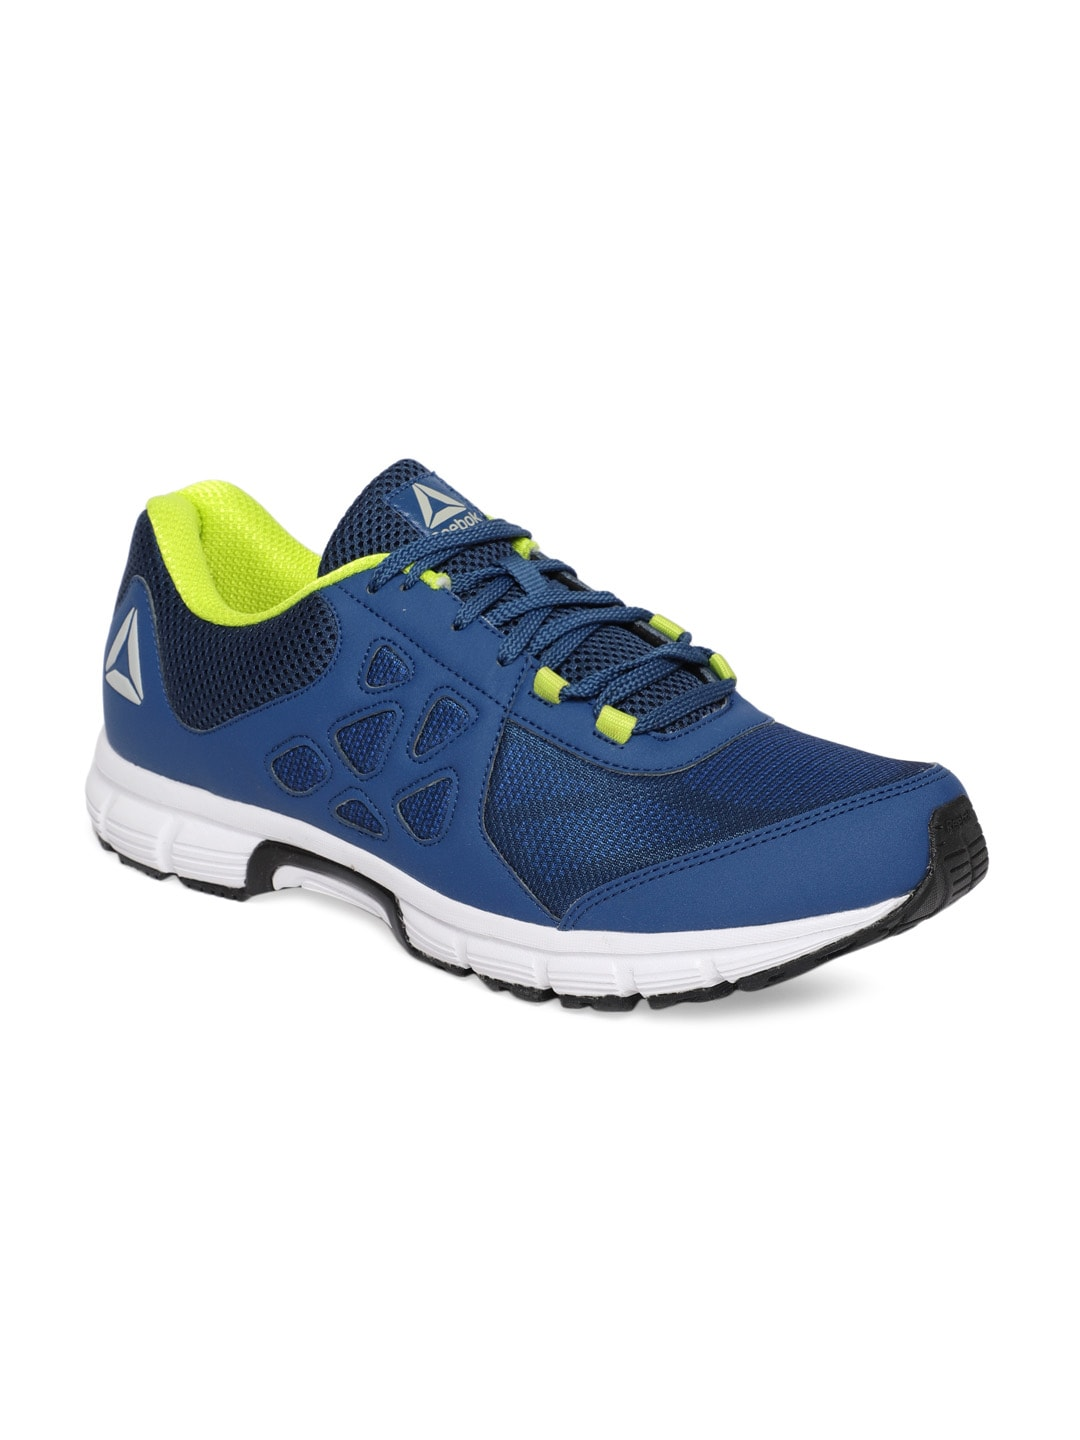 a9f7127c7 Reebok Sports Shoes - Buy Reebok Sports Shoes in India